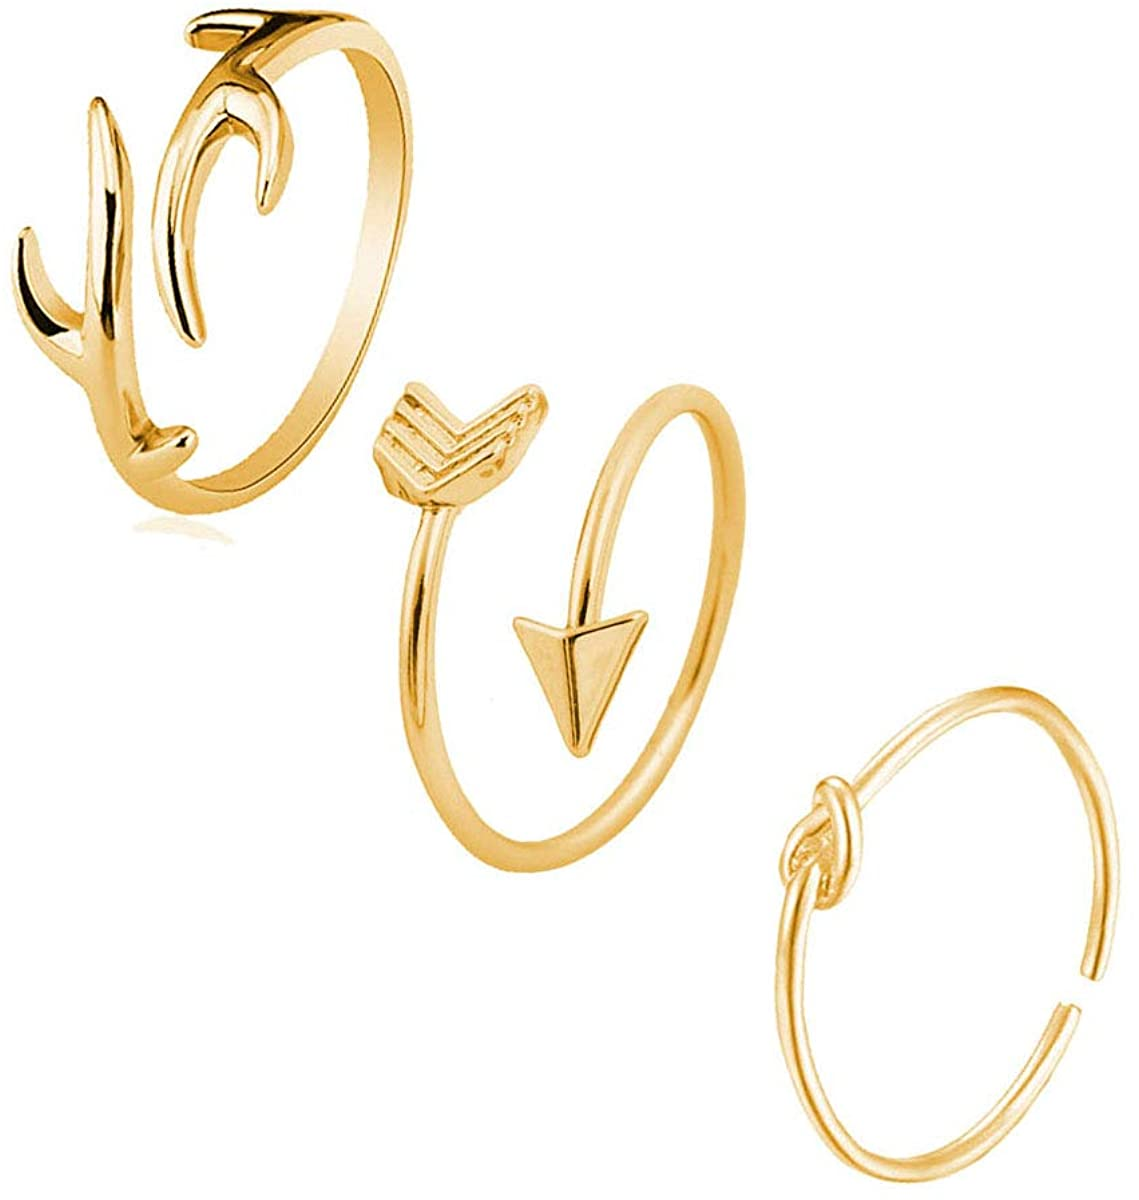 ZZ ZINFANDEL 3 Pcs Open Adjustable Antlers Branches Love Arrow Knot Rings Set Stackable Thumb Knuckle Rings for Teen Girls Fashion Jewelry